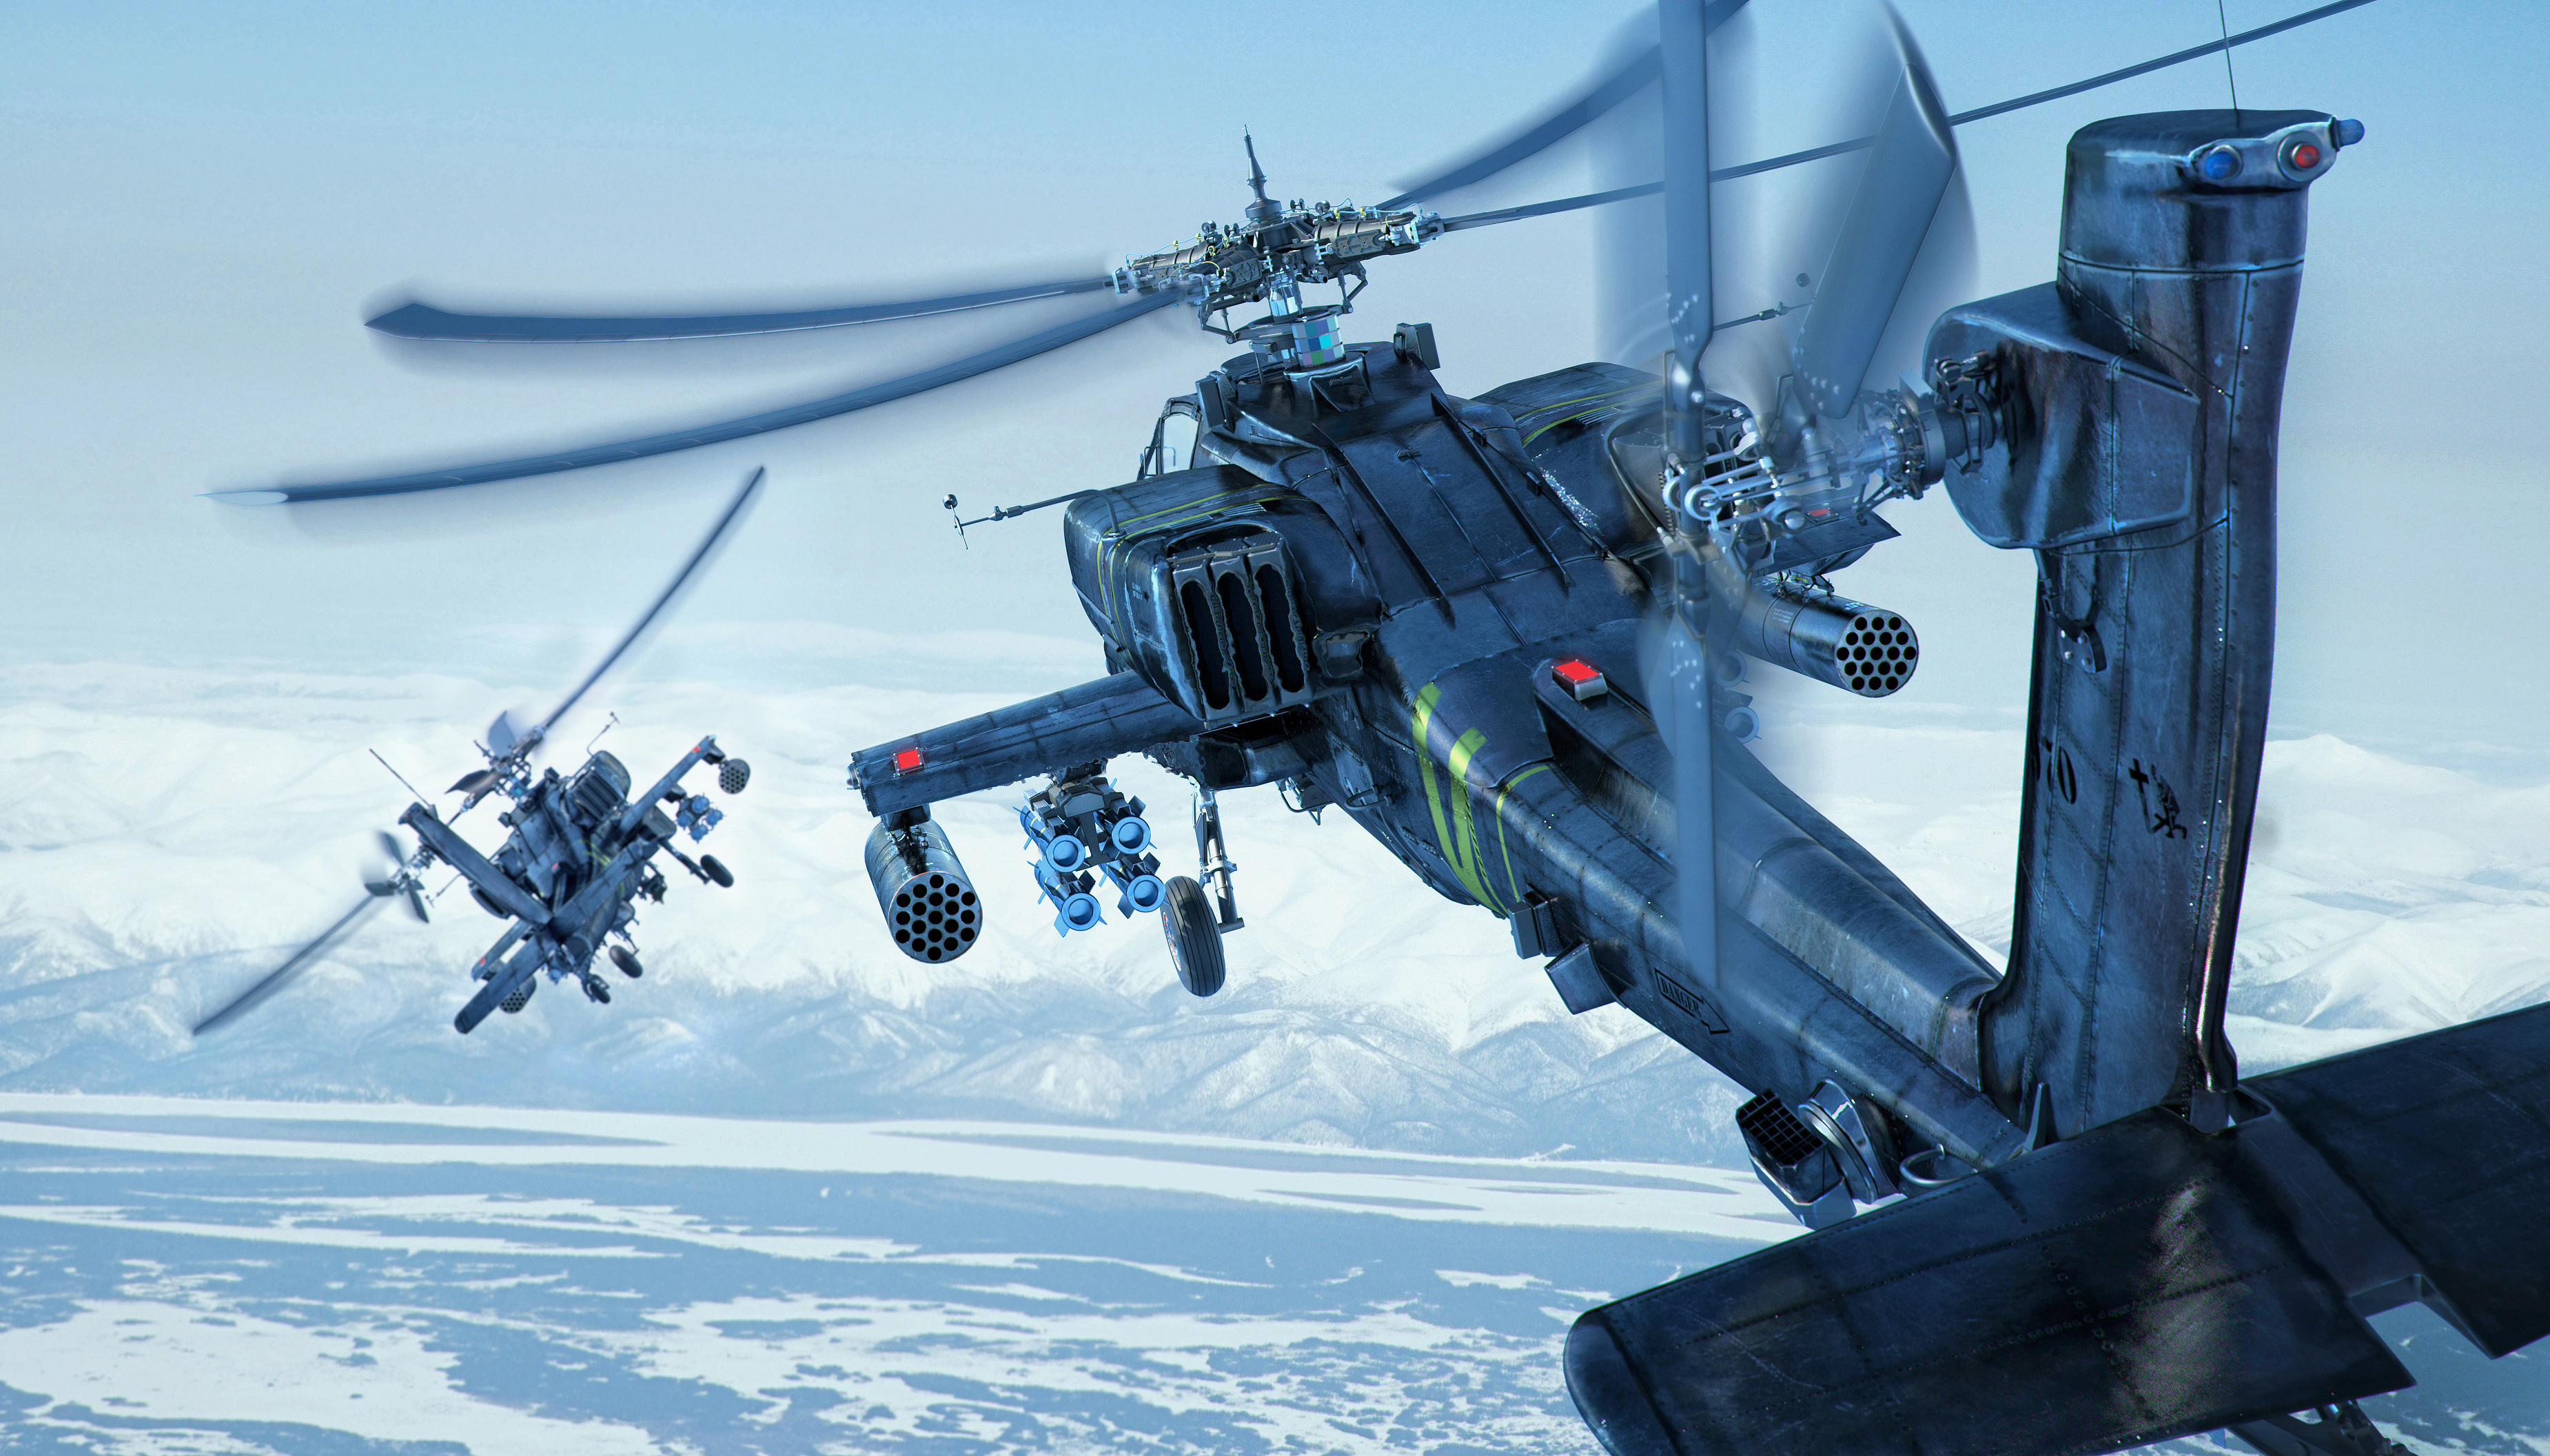 sky apache boeing longbow ah 64d helicopter military d wallpaper 3700x2113